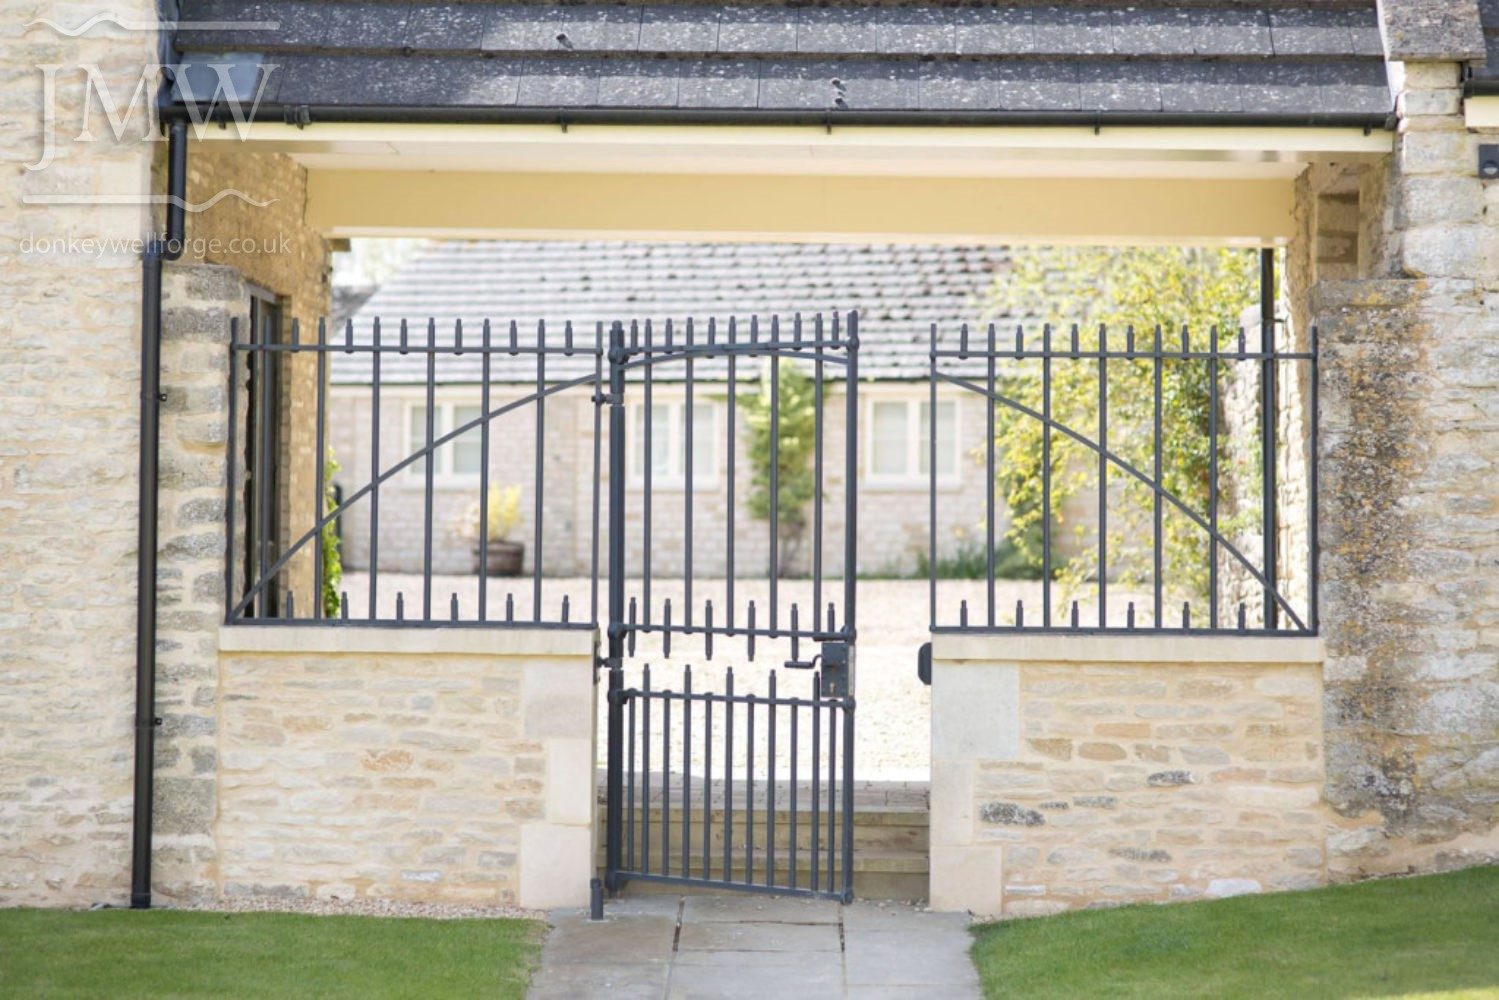 iron-gate-country-estate-bespoke-blacksmith-donkeywell-forge